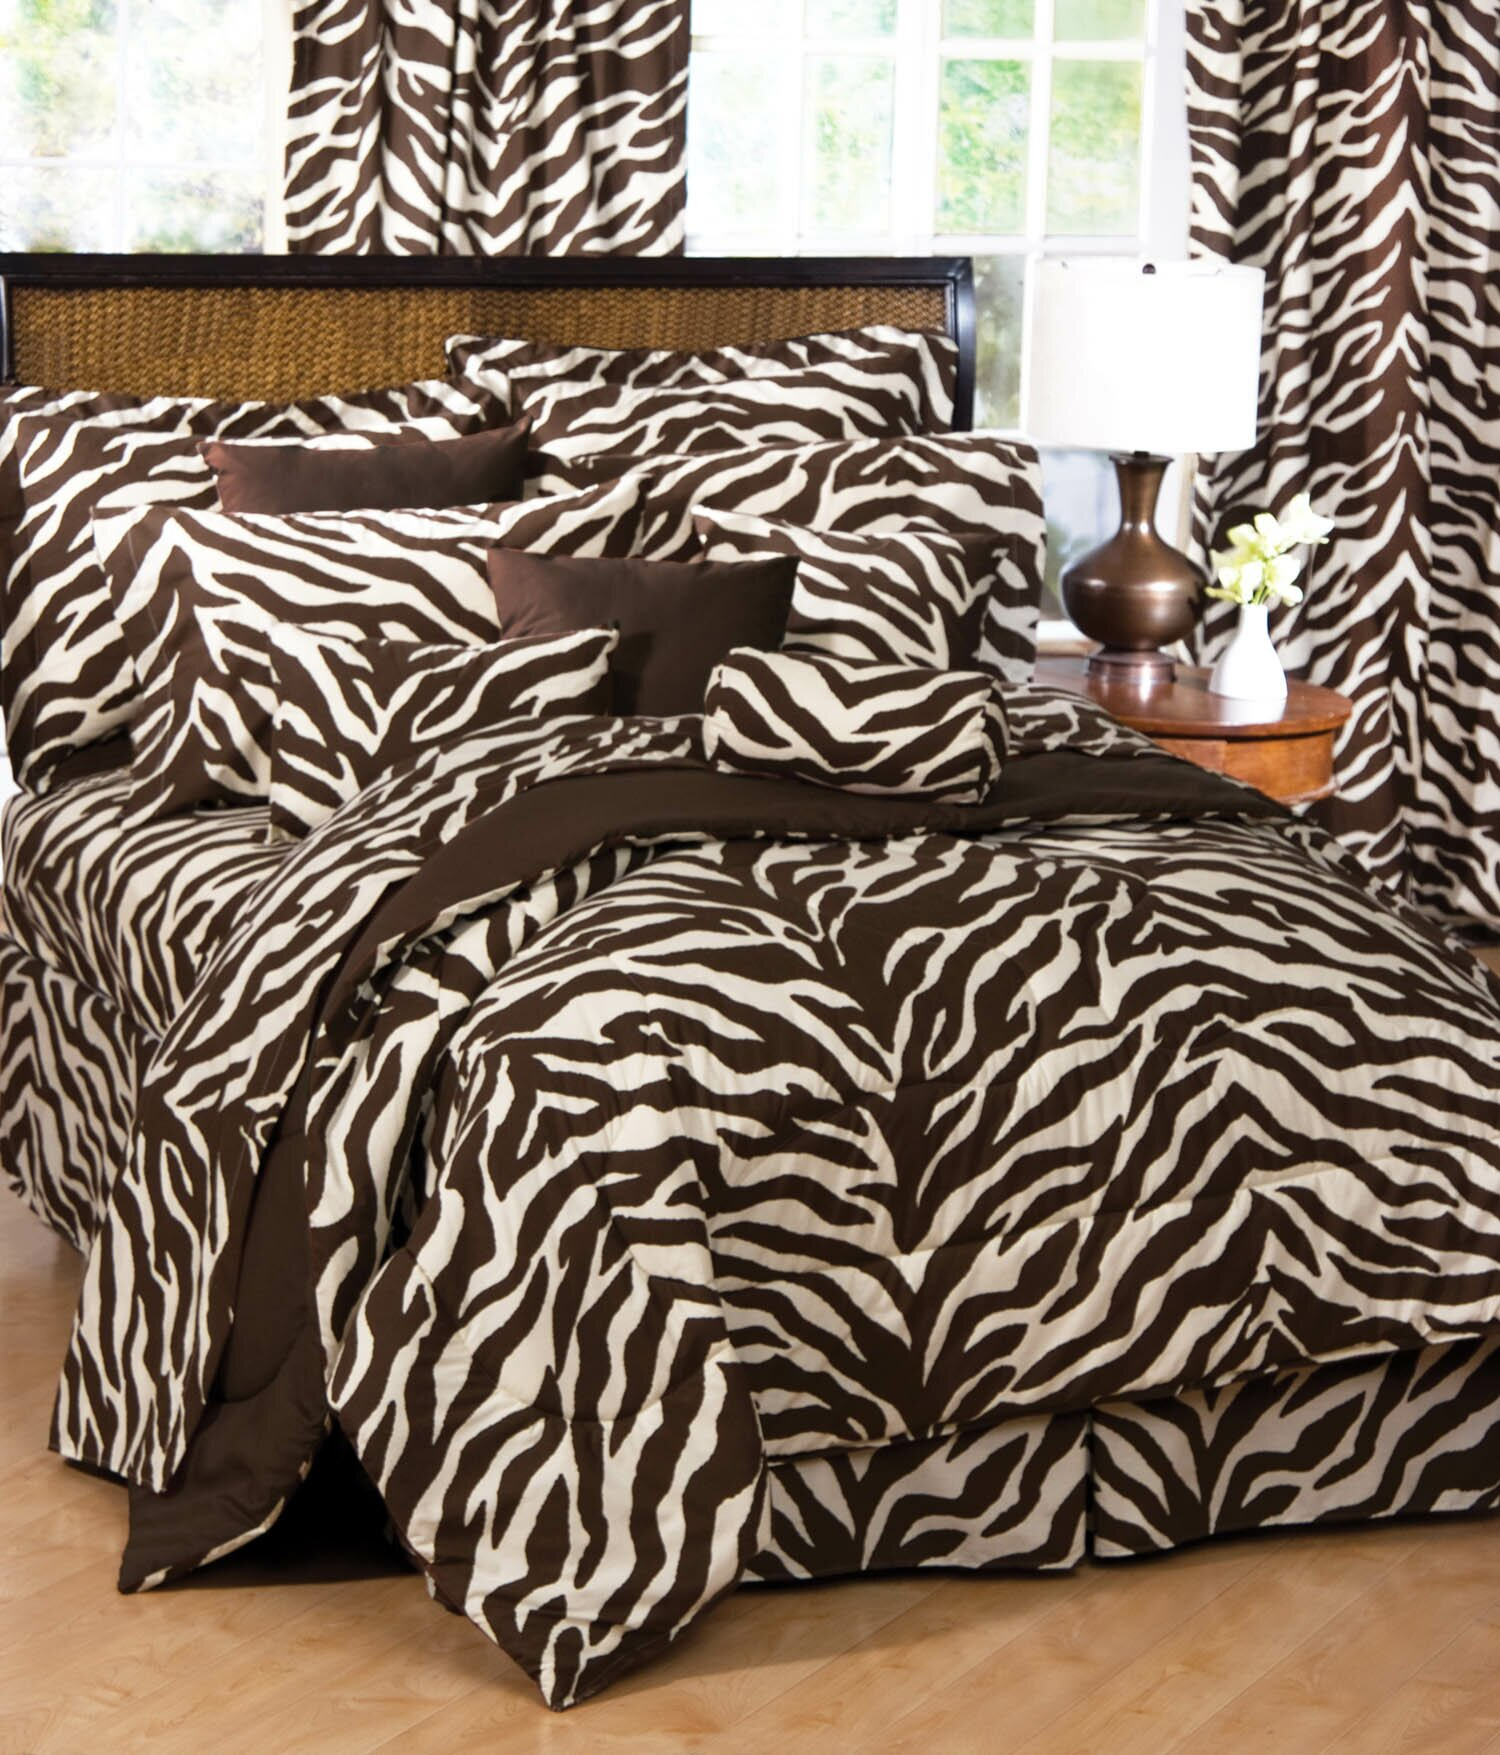 Leopard Print Bedroom Zebra Print Bedroom Ideas Best Teen Rooms Unique Bedroom Ideas